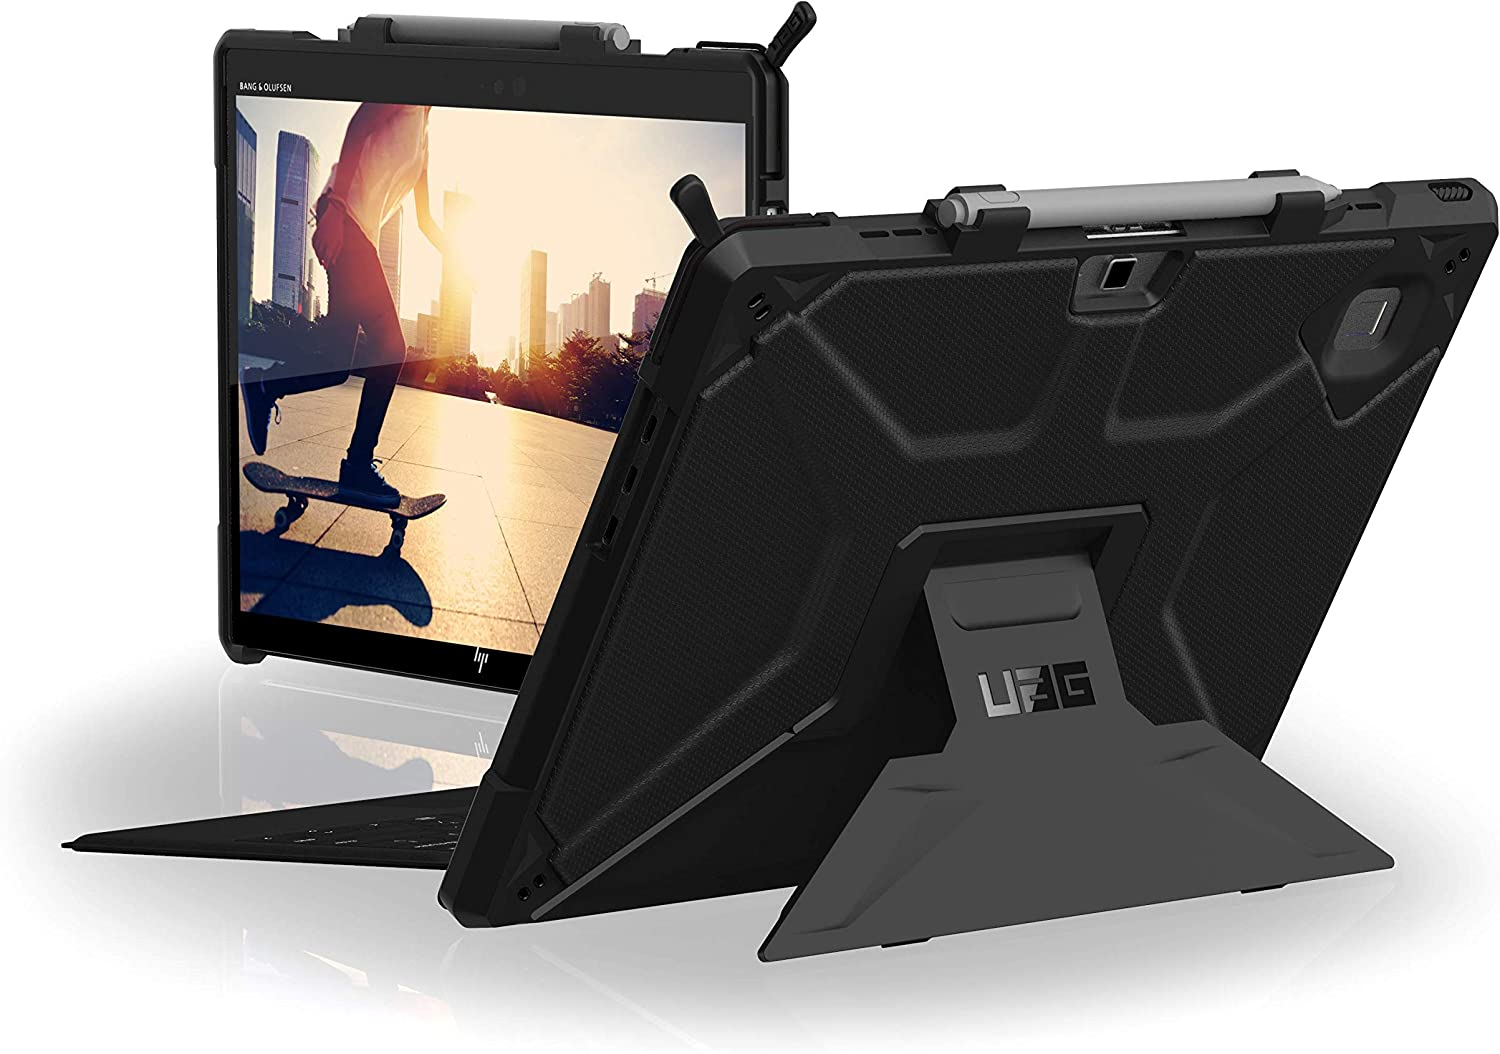 URBAN ARMOR GEAR UAG Compatible with HP Elite x2 G4 12.3-inch & 13-inch, Tablet Case with Built-in Adjustable Kickstand, Metropolis Feather-Light Rugged Black Military Drop Tested Case (822266B14040)